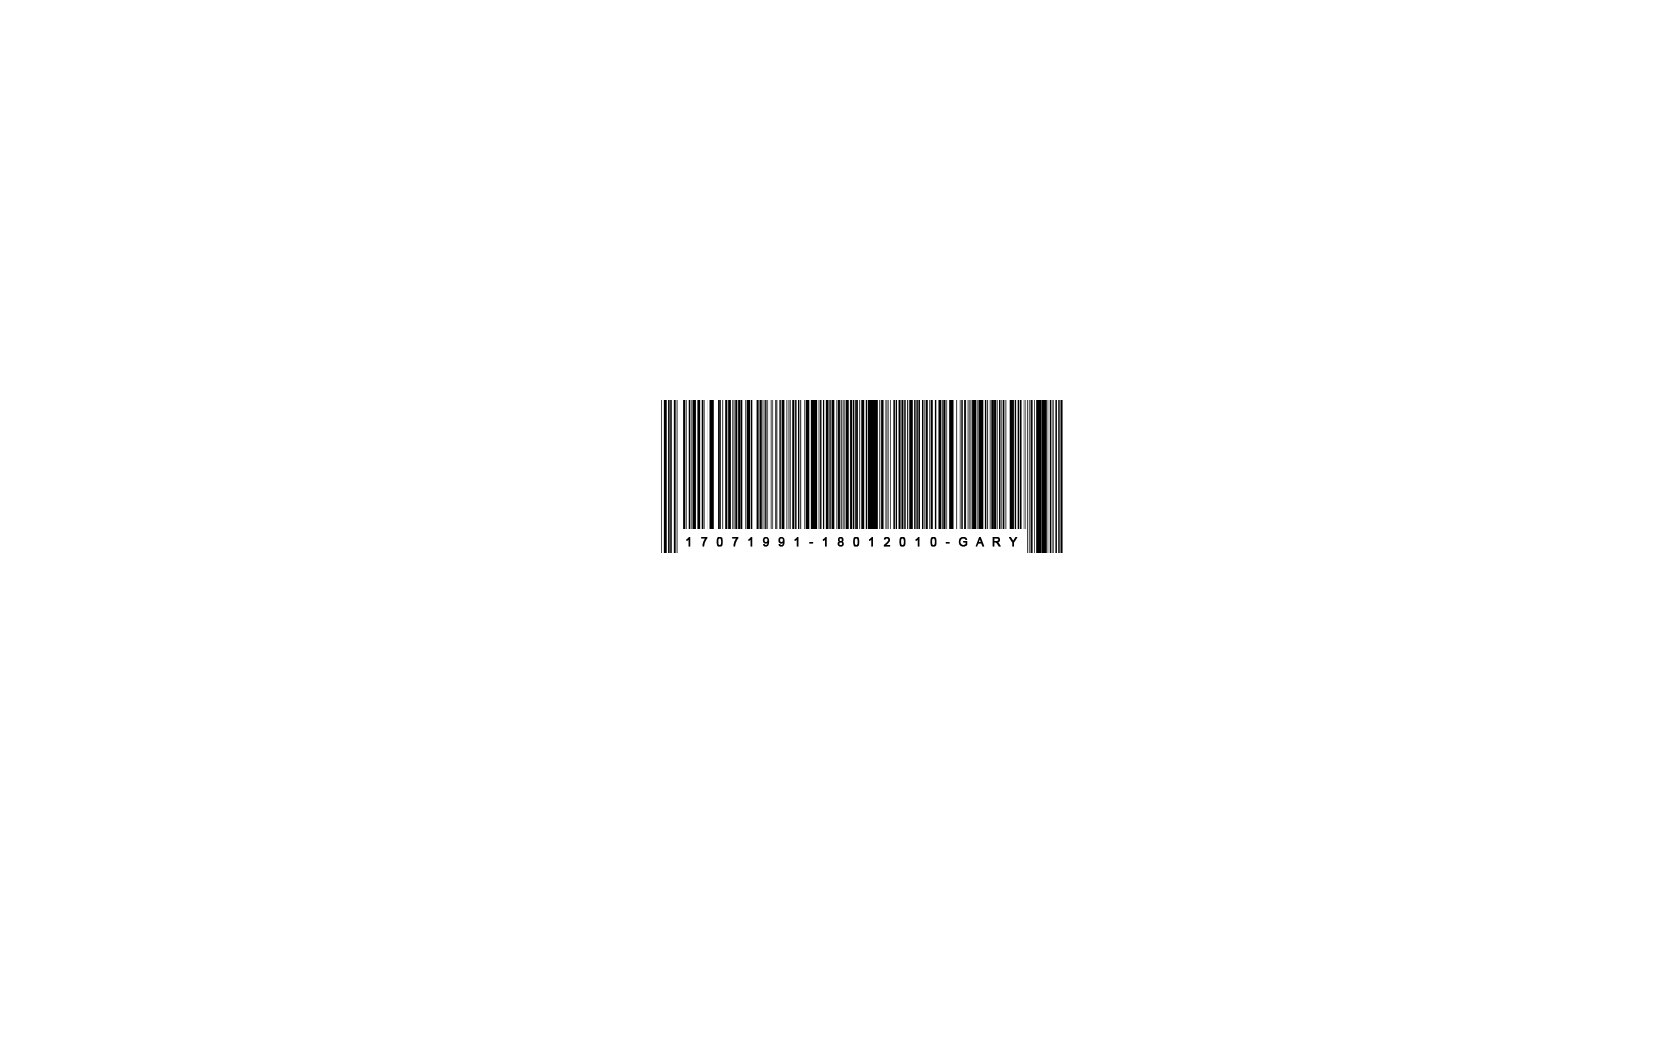 Barcode Wallpaper by C-GFX on DeviantArt